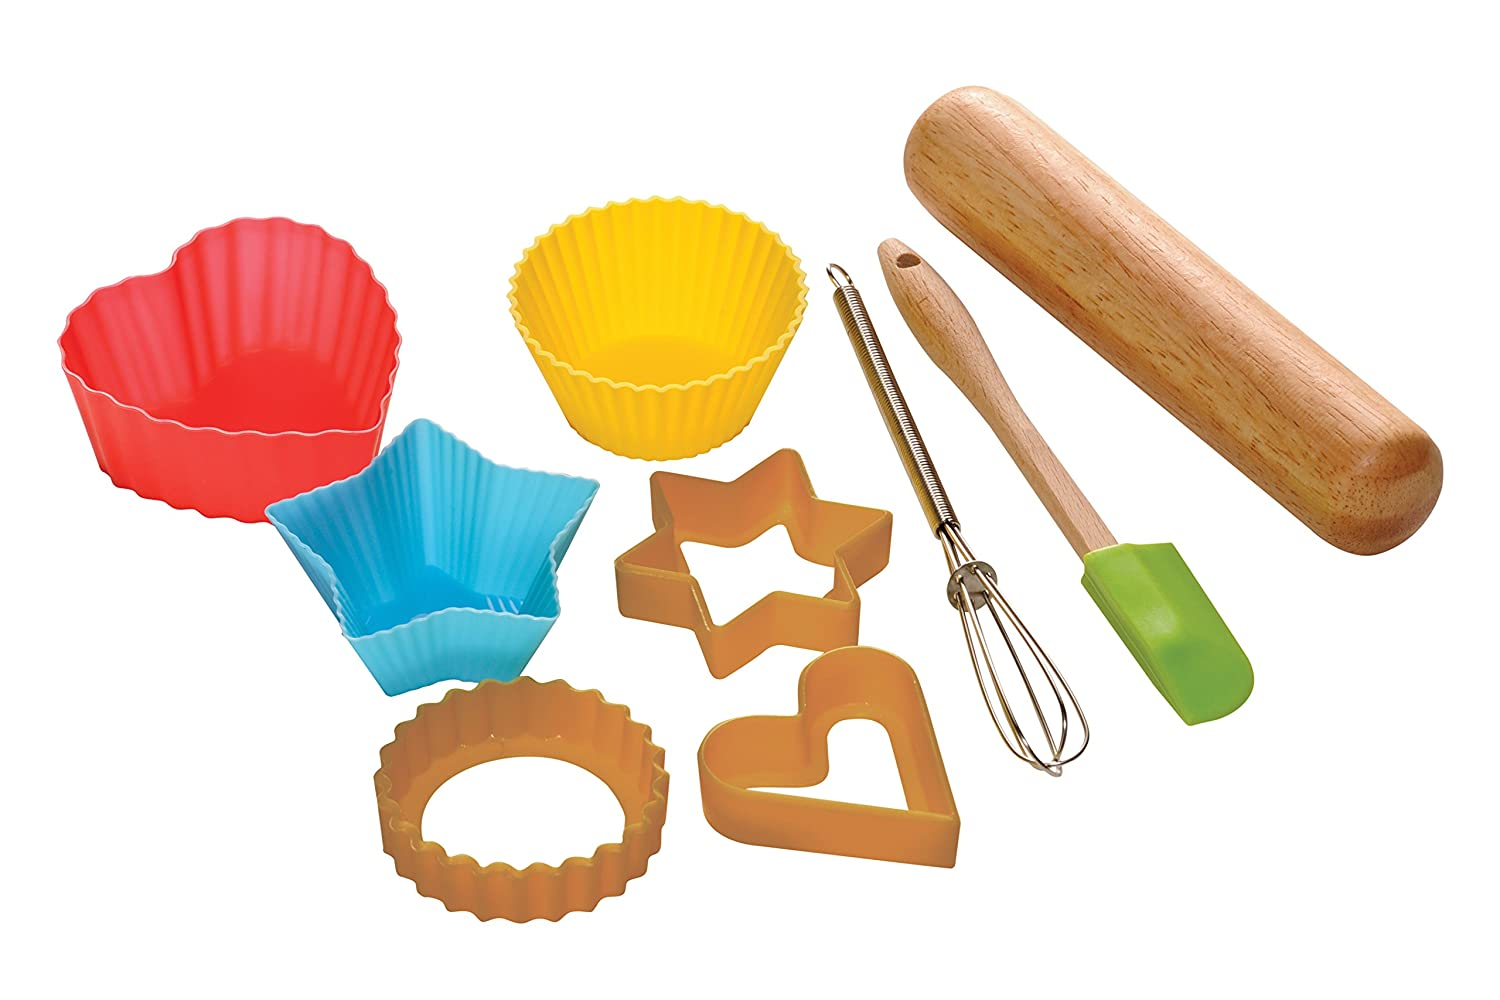 Premier Housewares Children's Baking Set, 9-Pieces 0805165